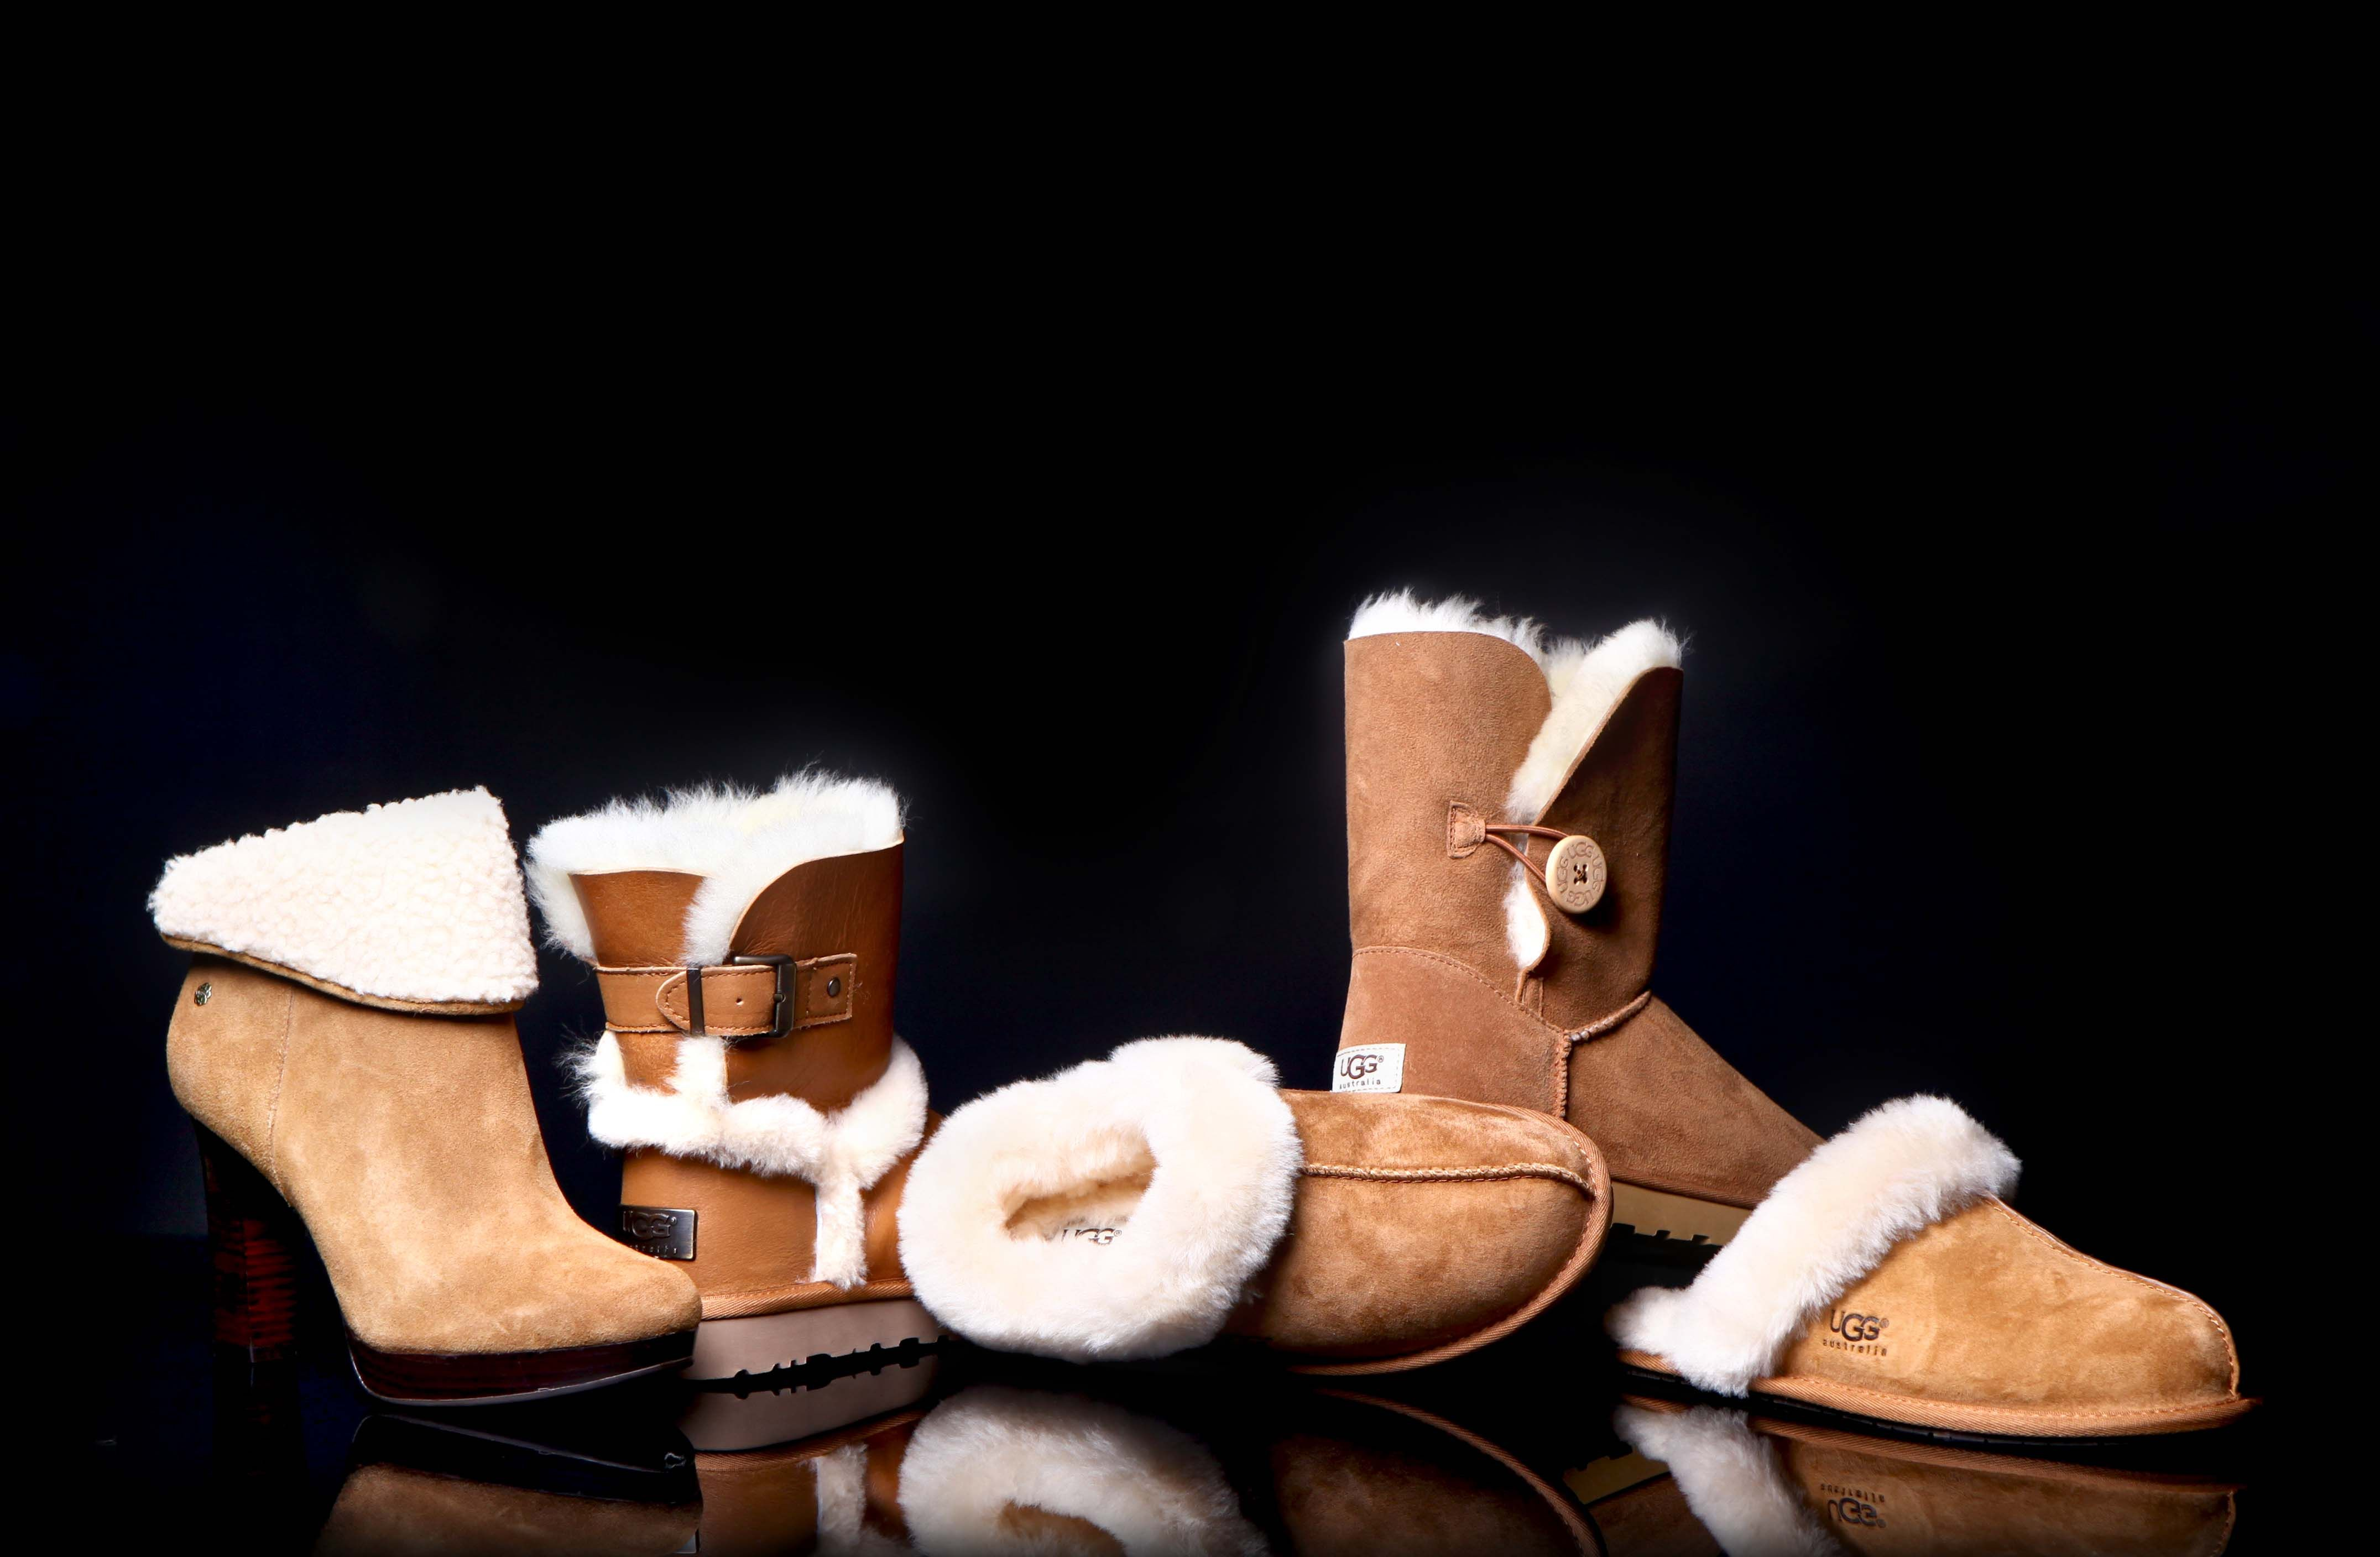 THE LATEST UGG BOOTS | All your favourite boots all in one place. #ugg #uggboots